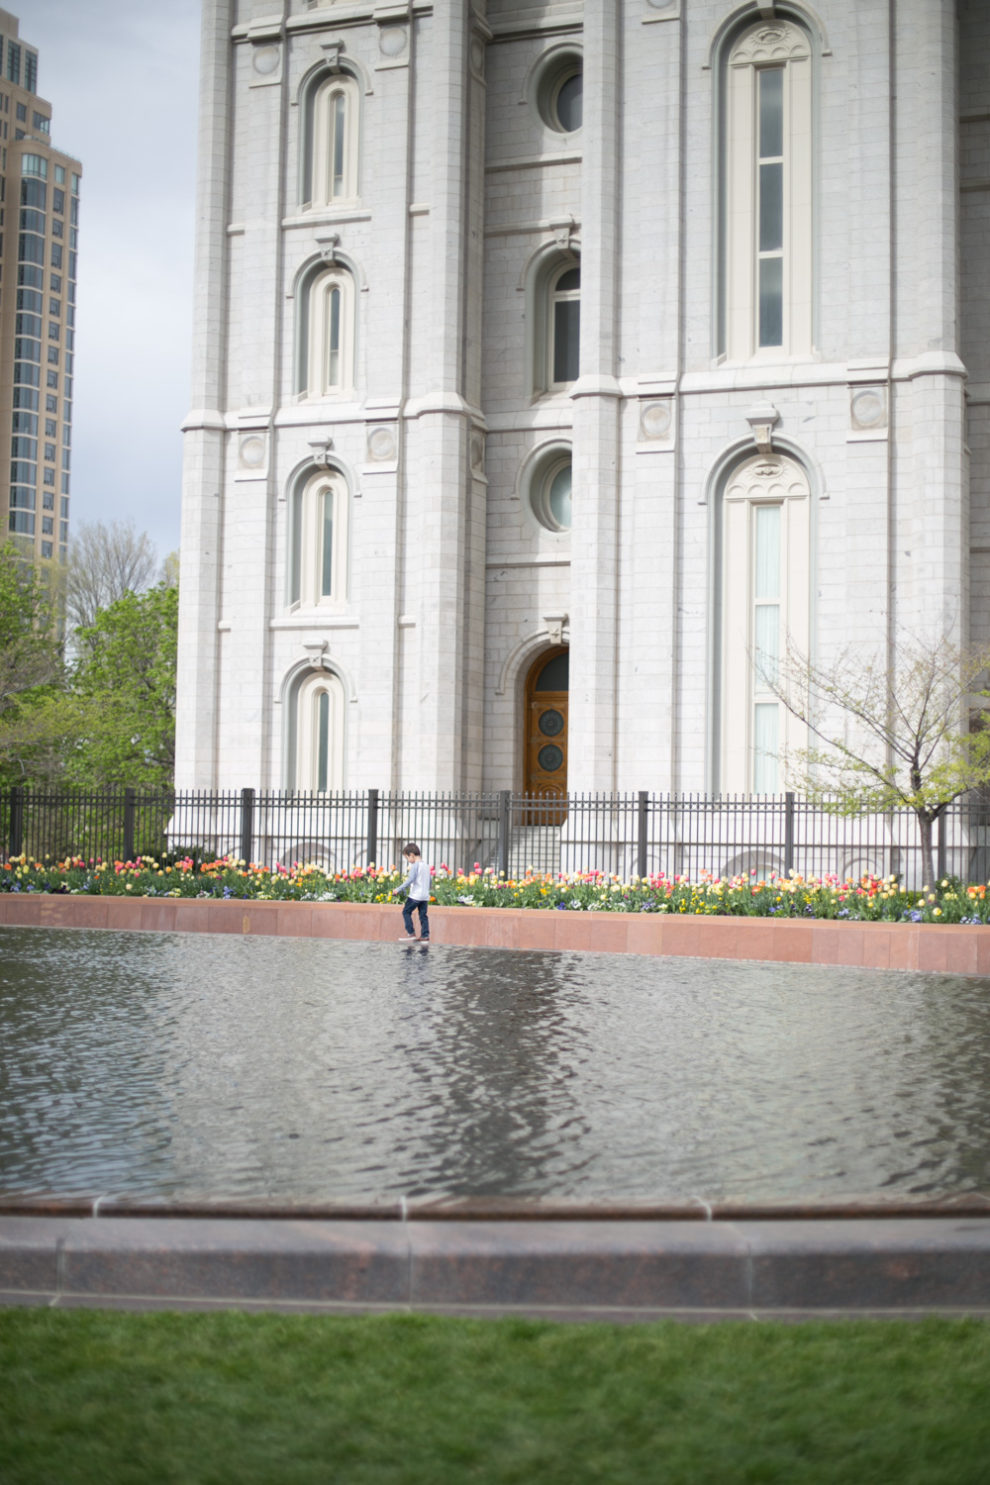 Temple Square (1 of 7)